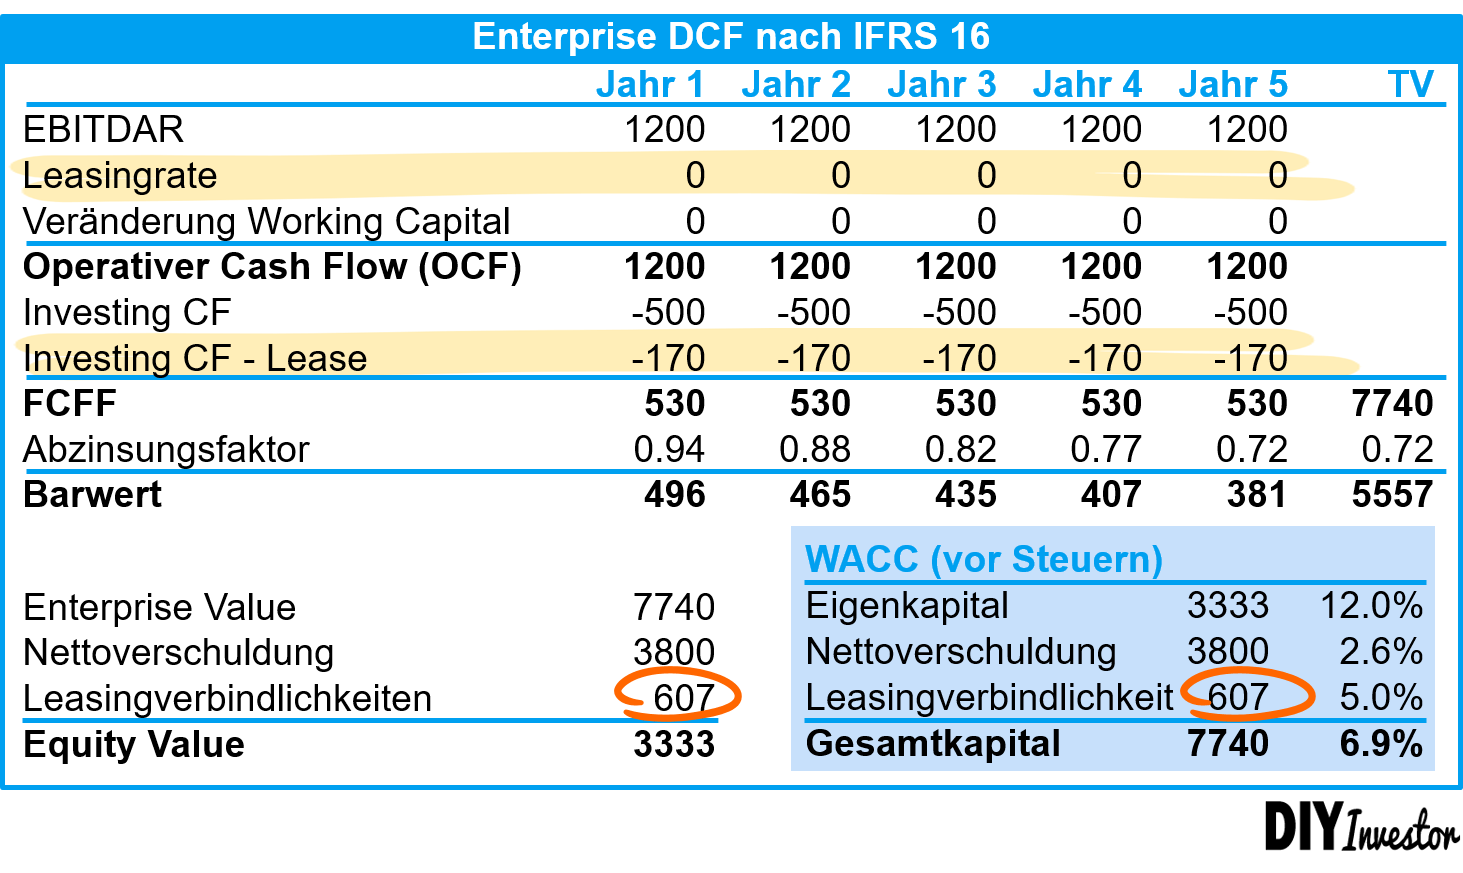 DCF IFRS 16 - Ermittlung Equity Value